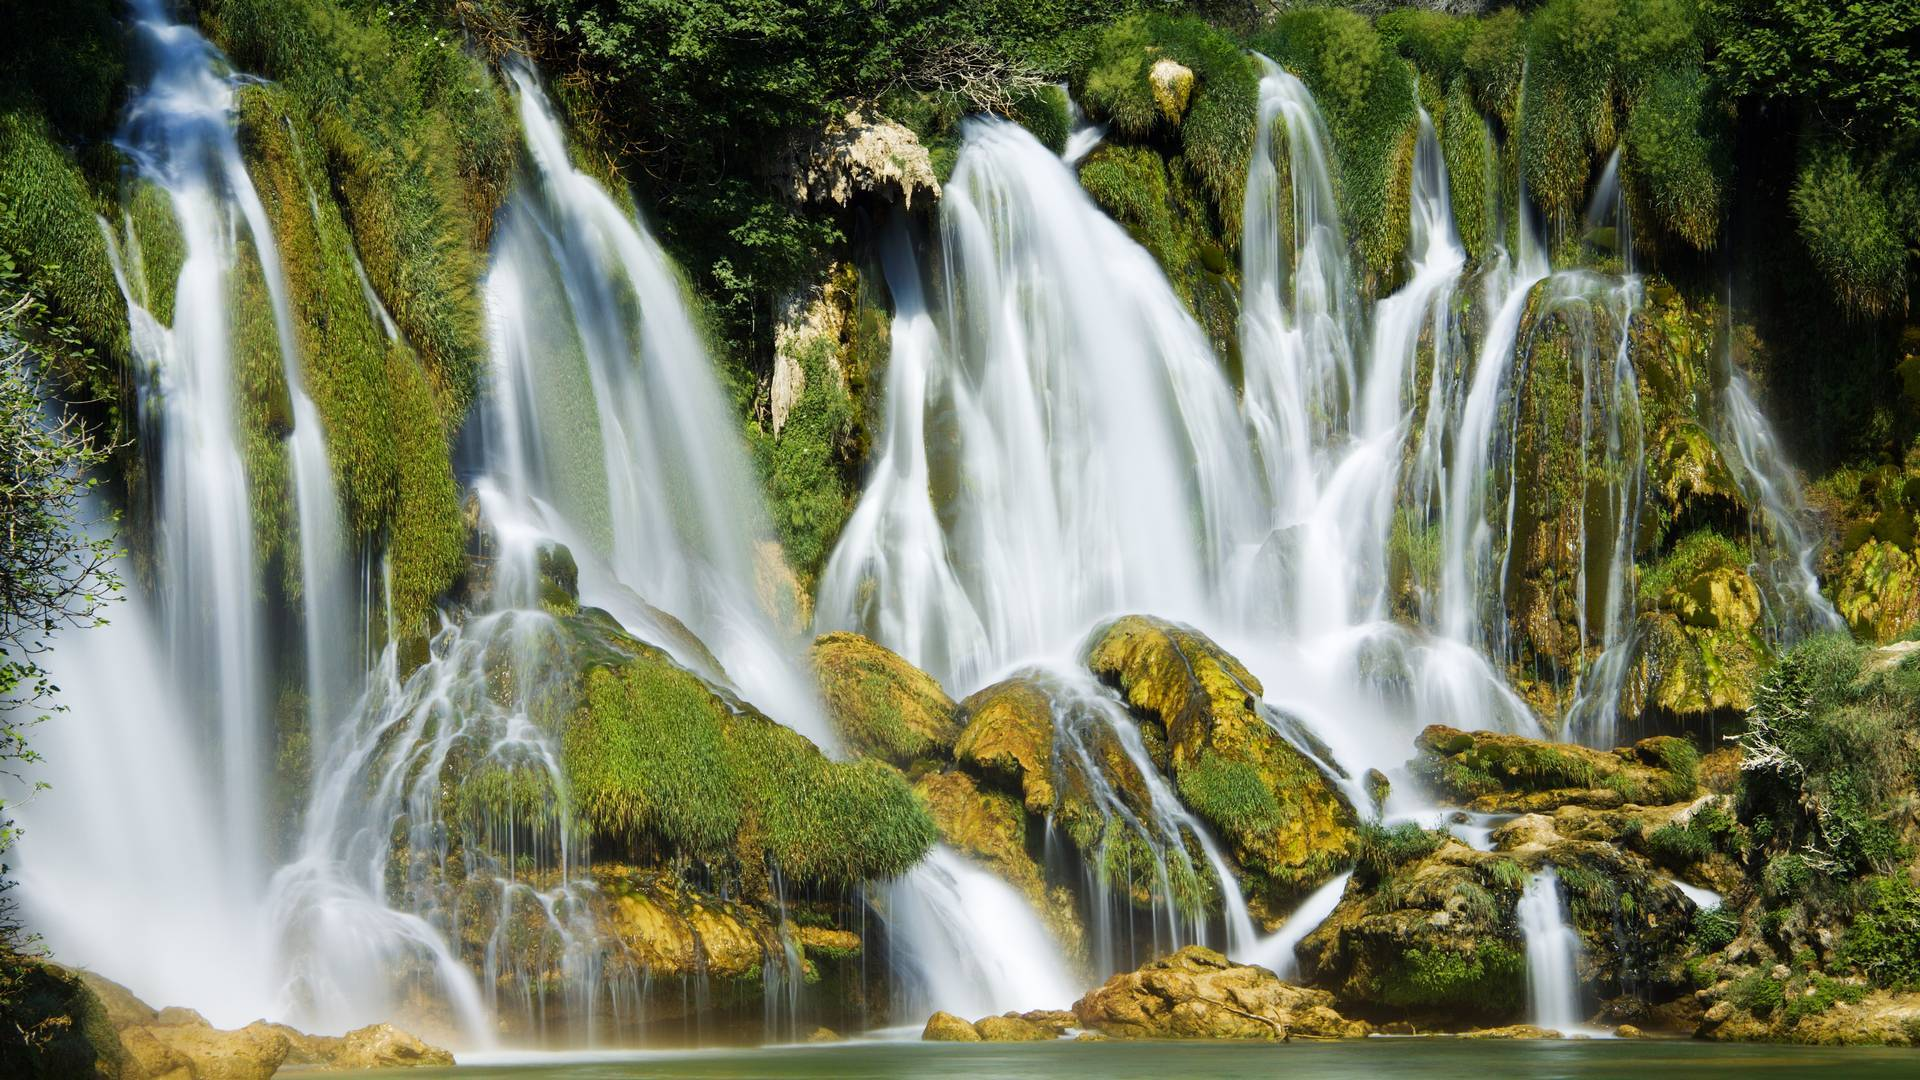 Krka National Park offers visitors free entry to celebrate its birthday